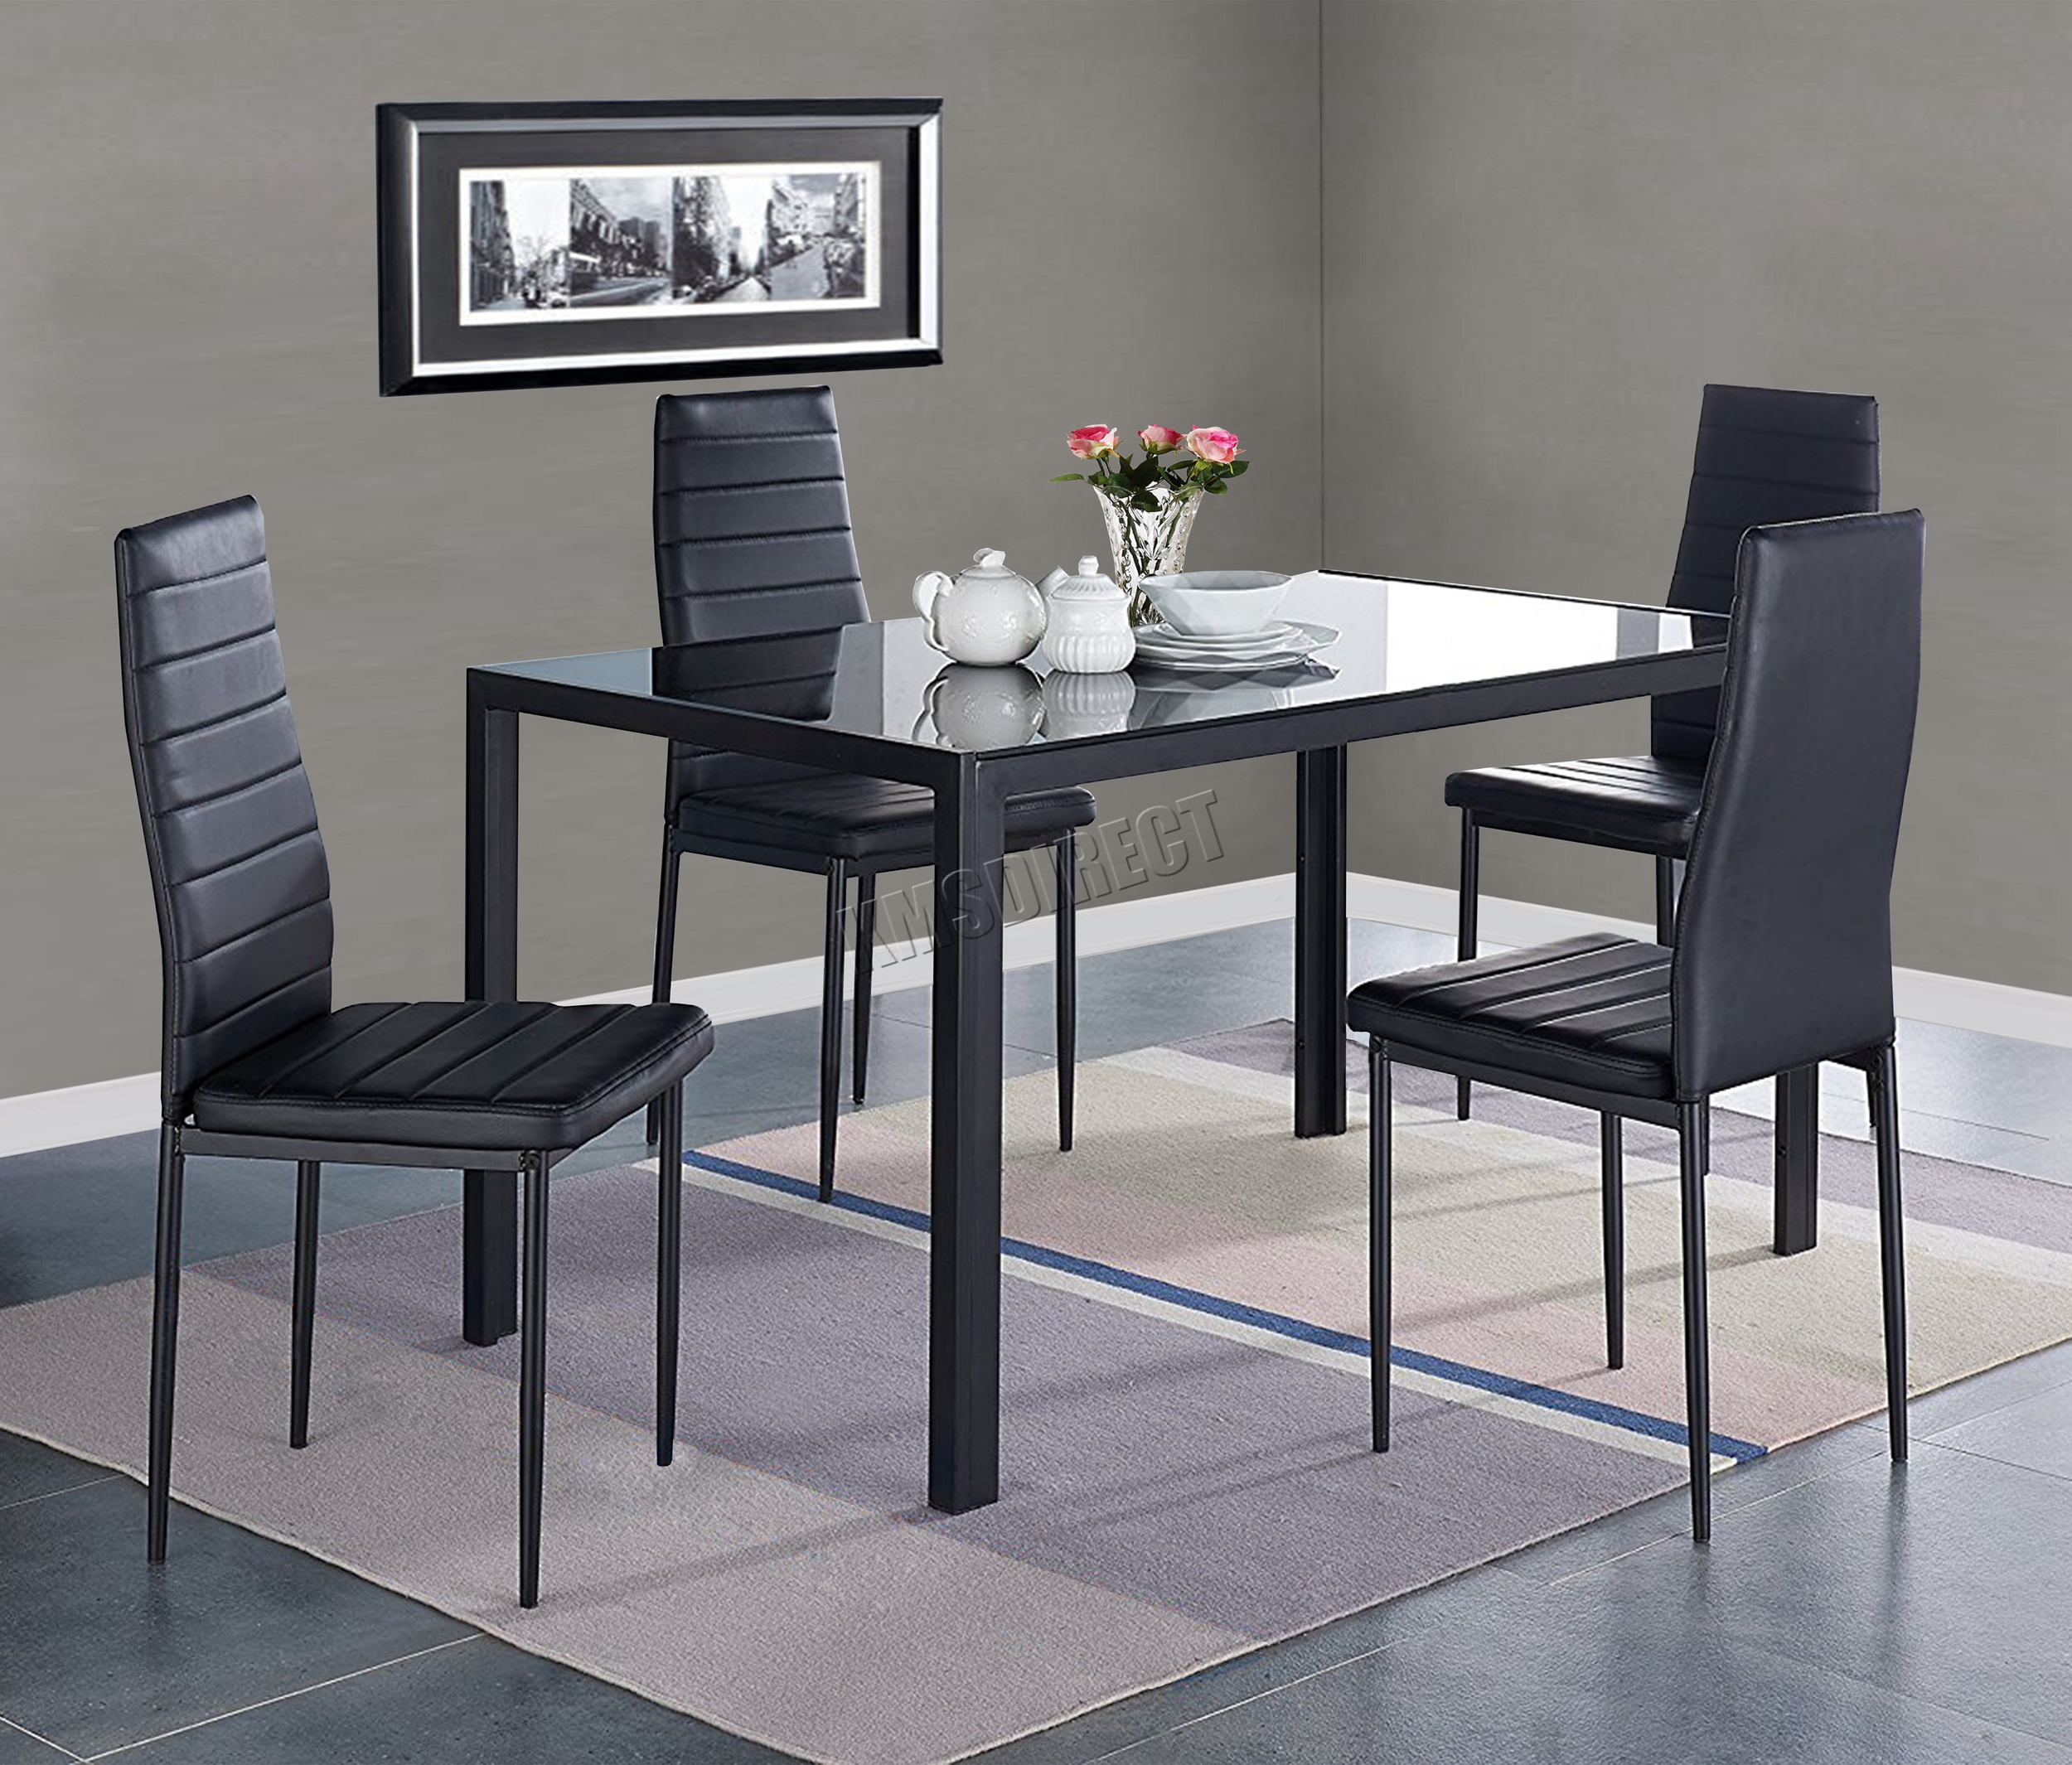 Glass Dining Room: WestWood Glass Dining Table With 4/6 Chairs Set Faux